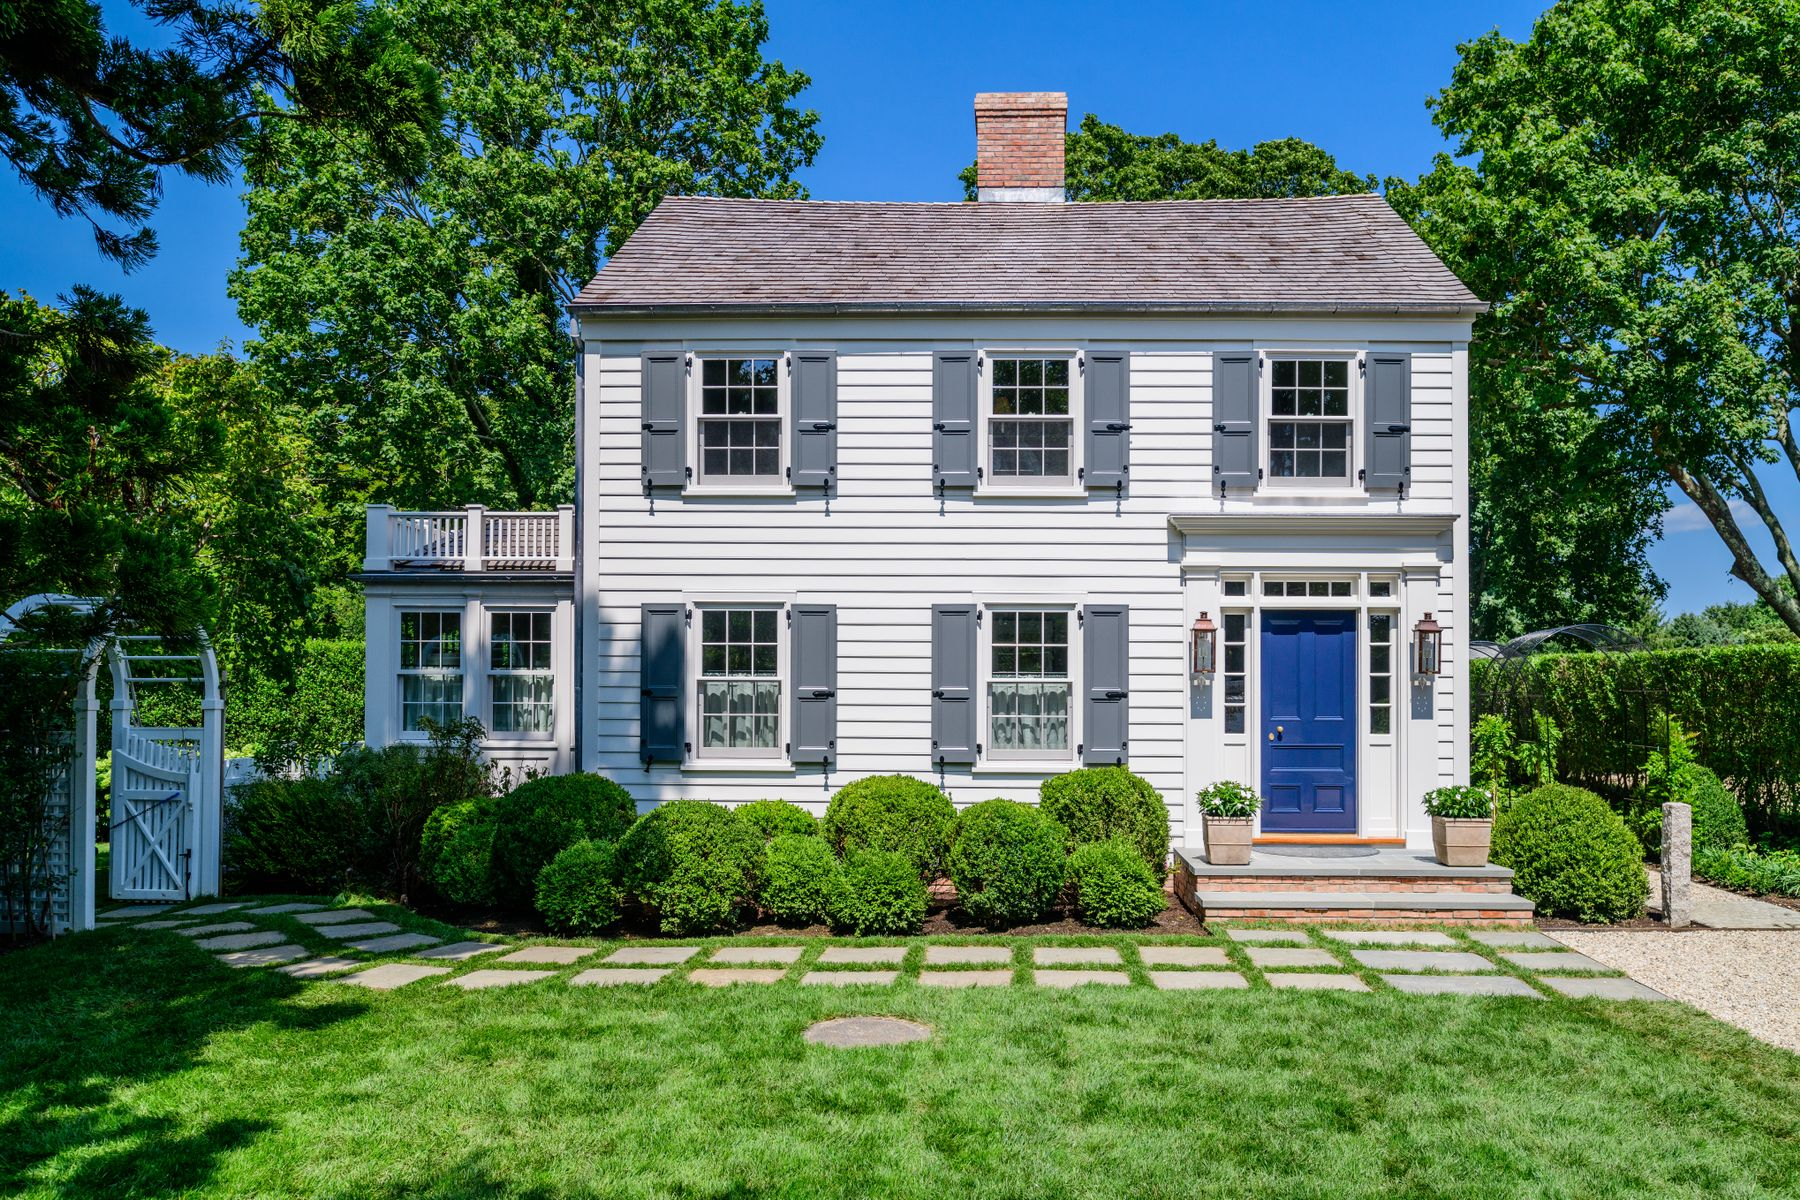 Single Family Home for Active at NEW AND LUXURIOUS RENOVATION WITH POOL Bridgehampton, New York 11932 United States